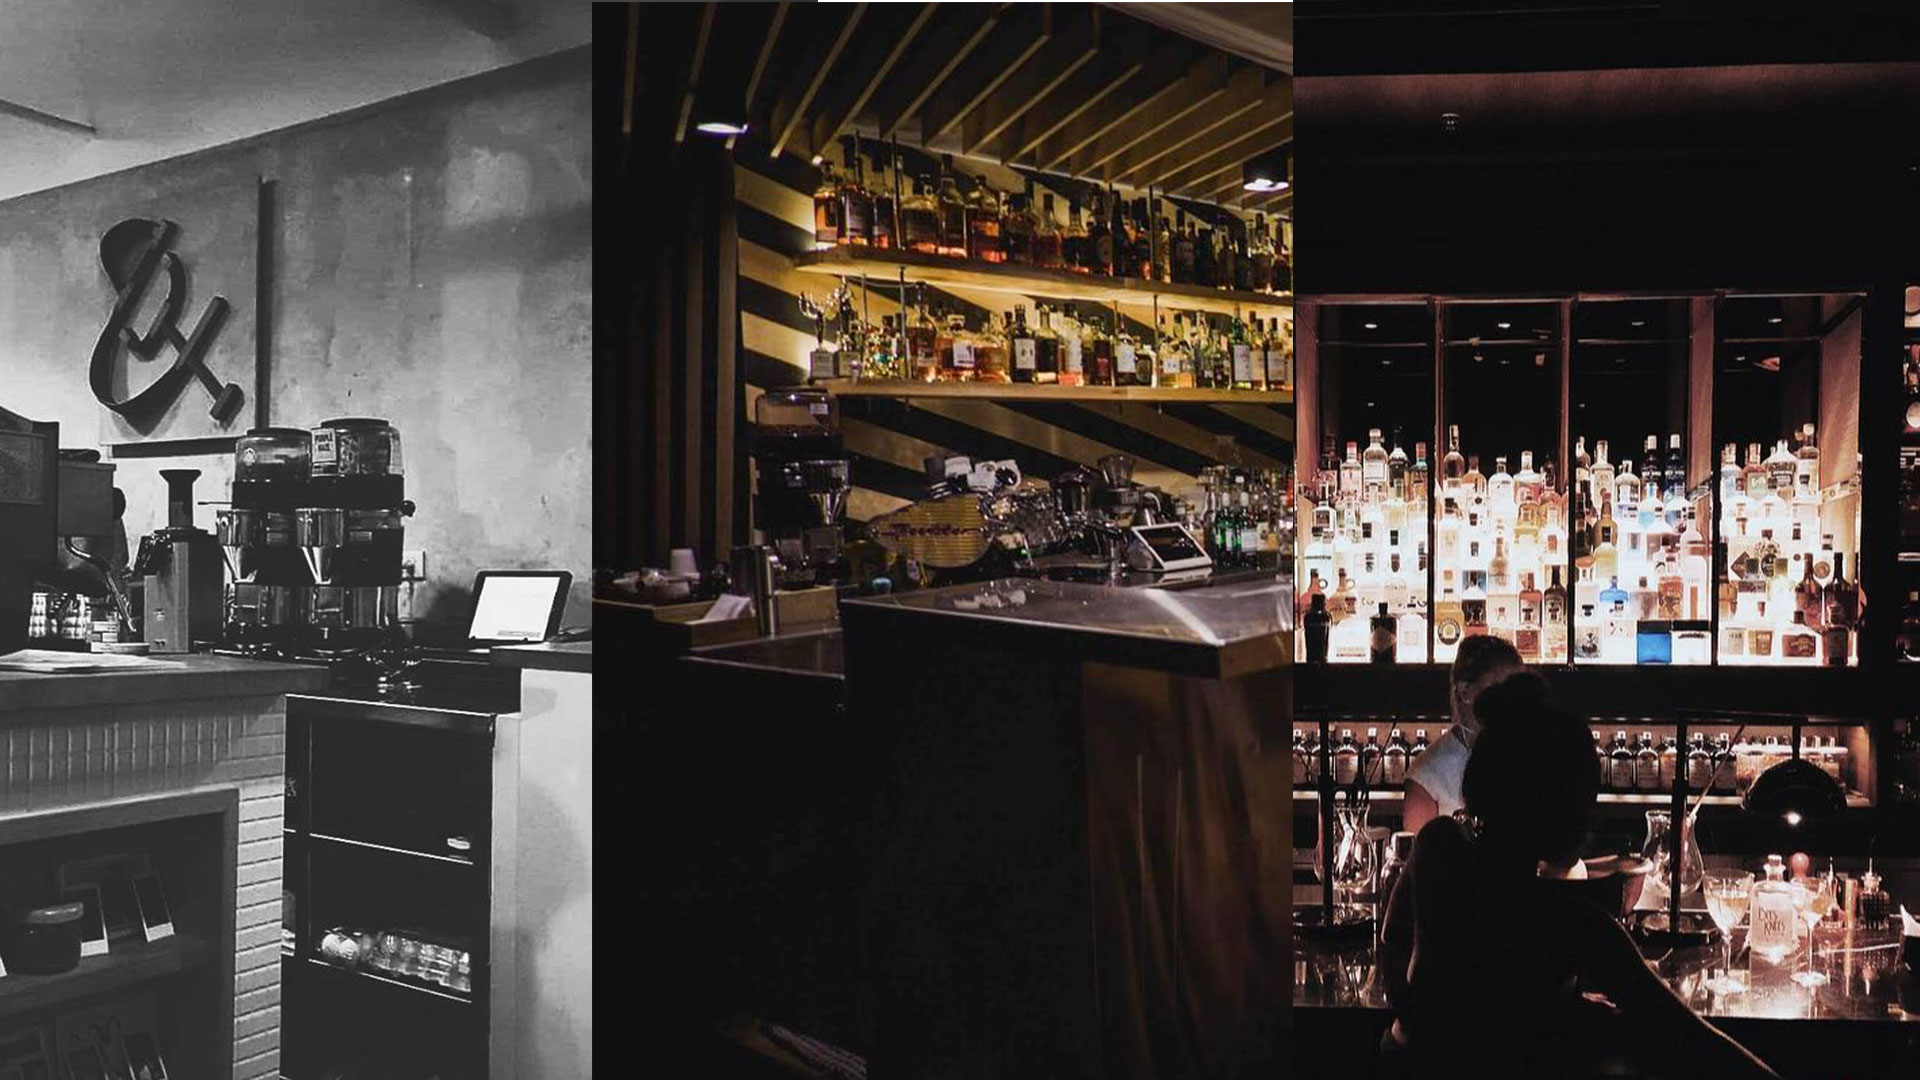 The Curator picks up it 4th citation as the Philippines' best bar as 2 other bars join the list for the first time.